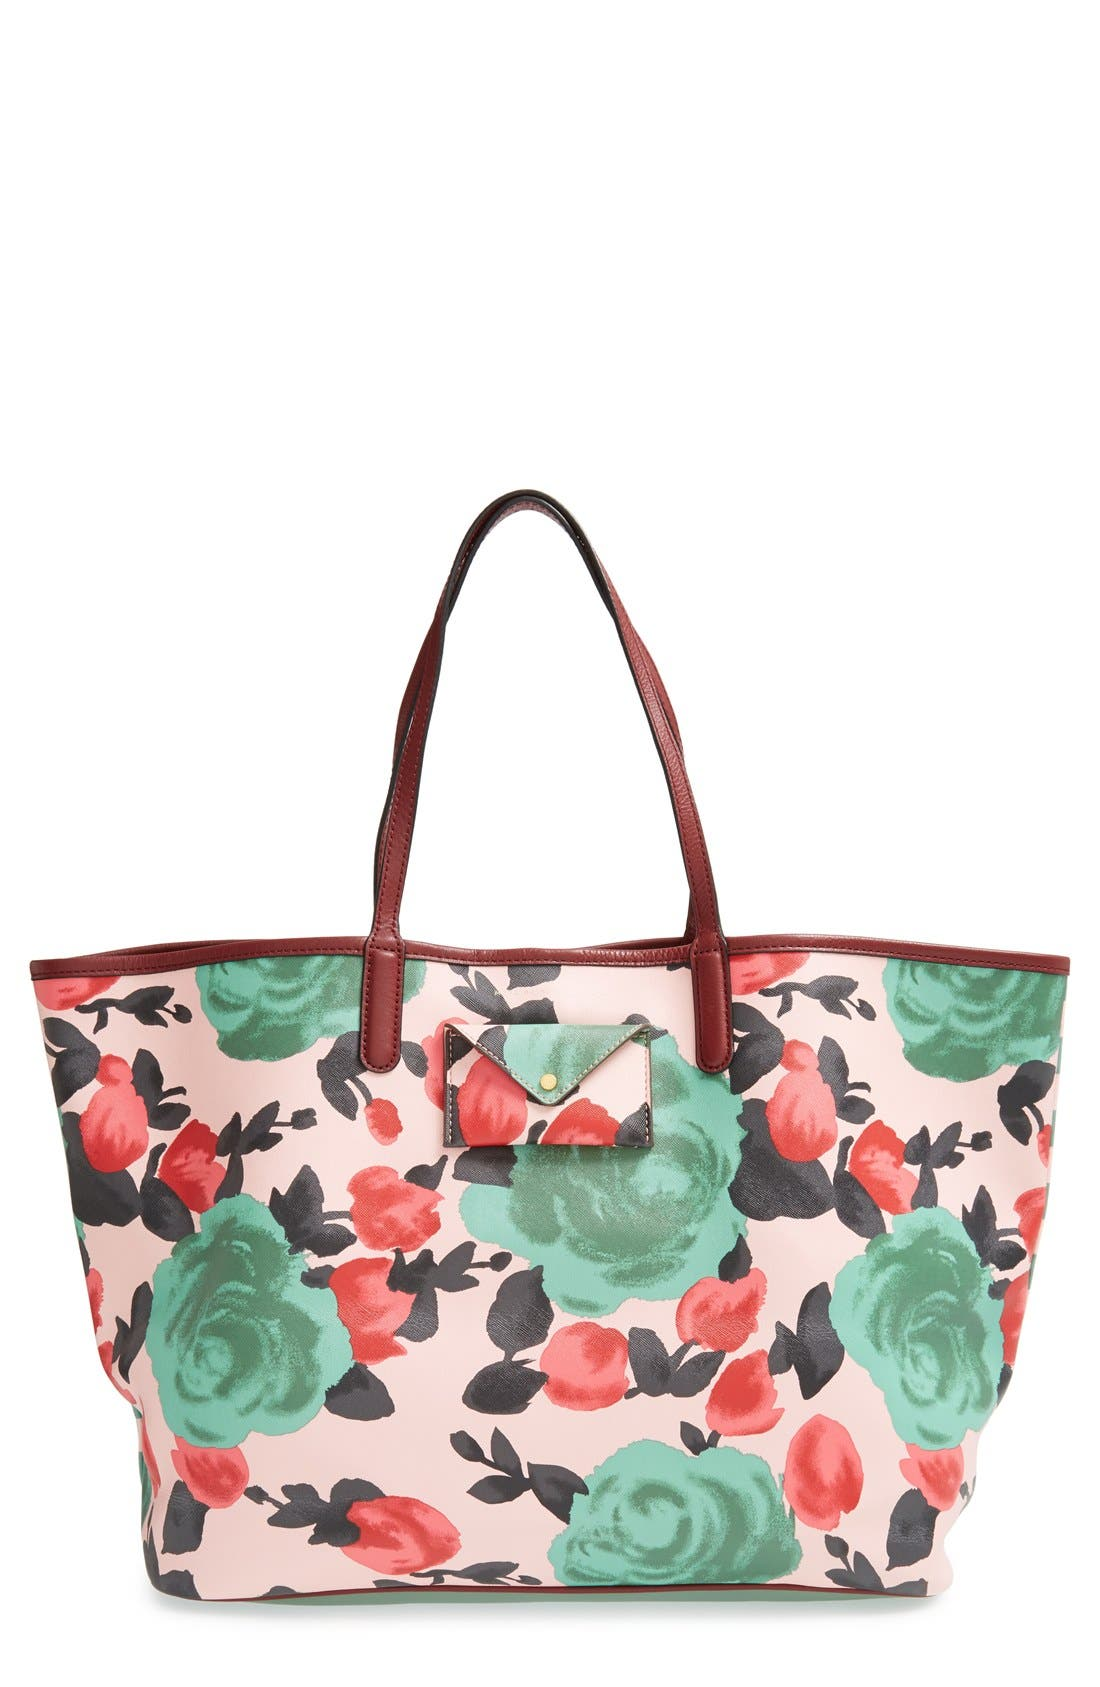 Main Image - MARC BY MARC JACOBS Large Beach Tote